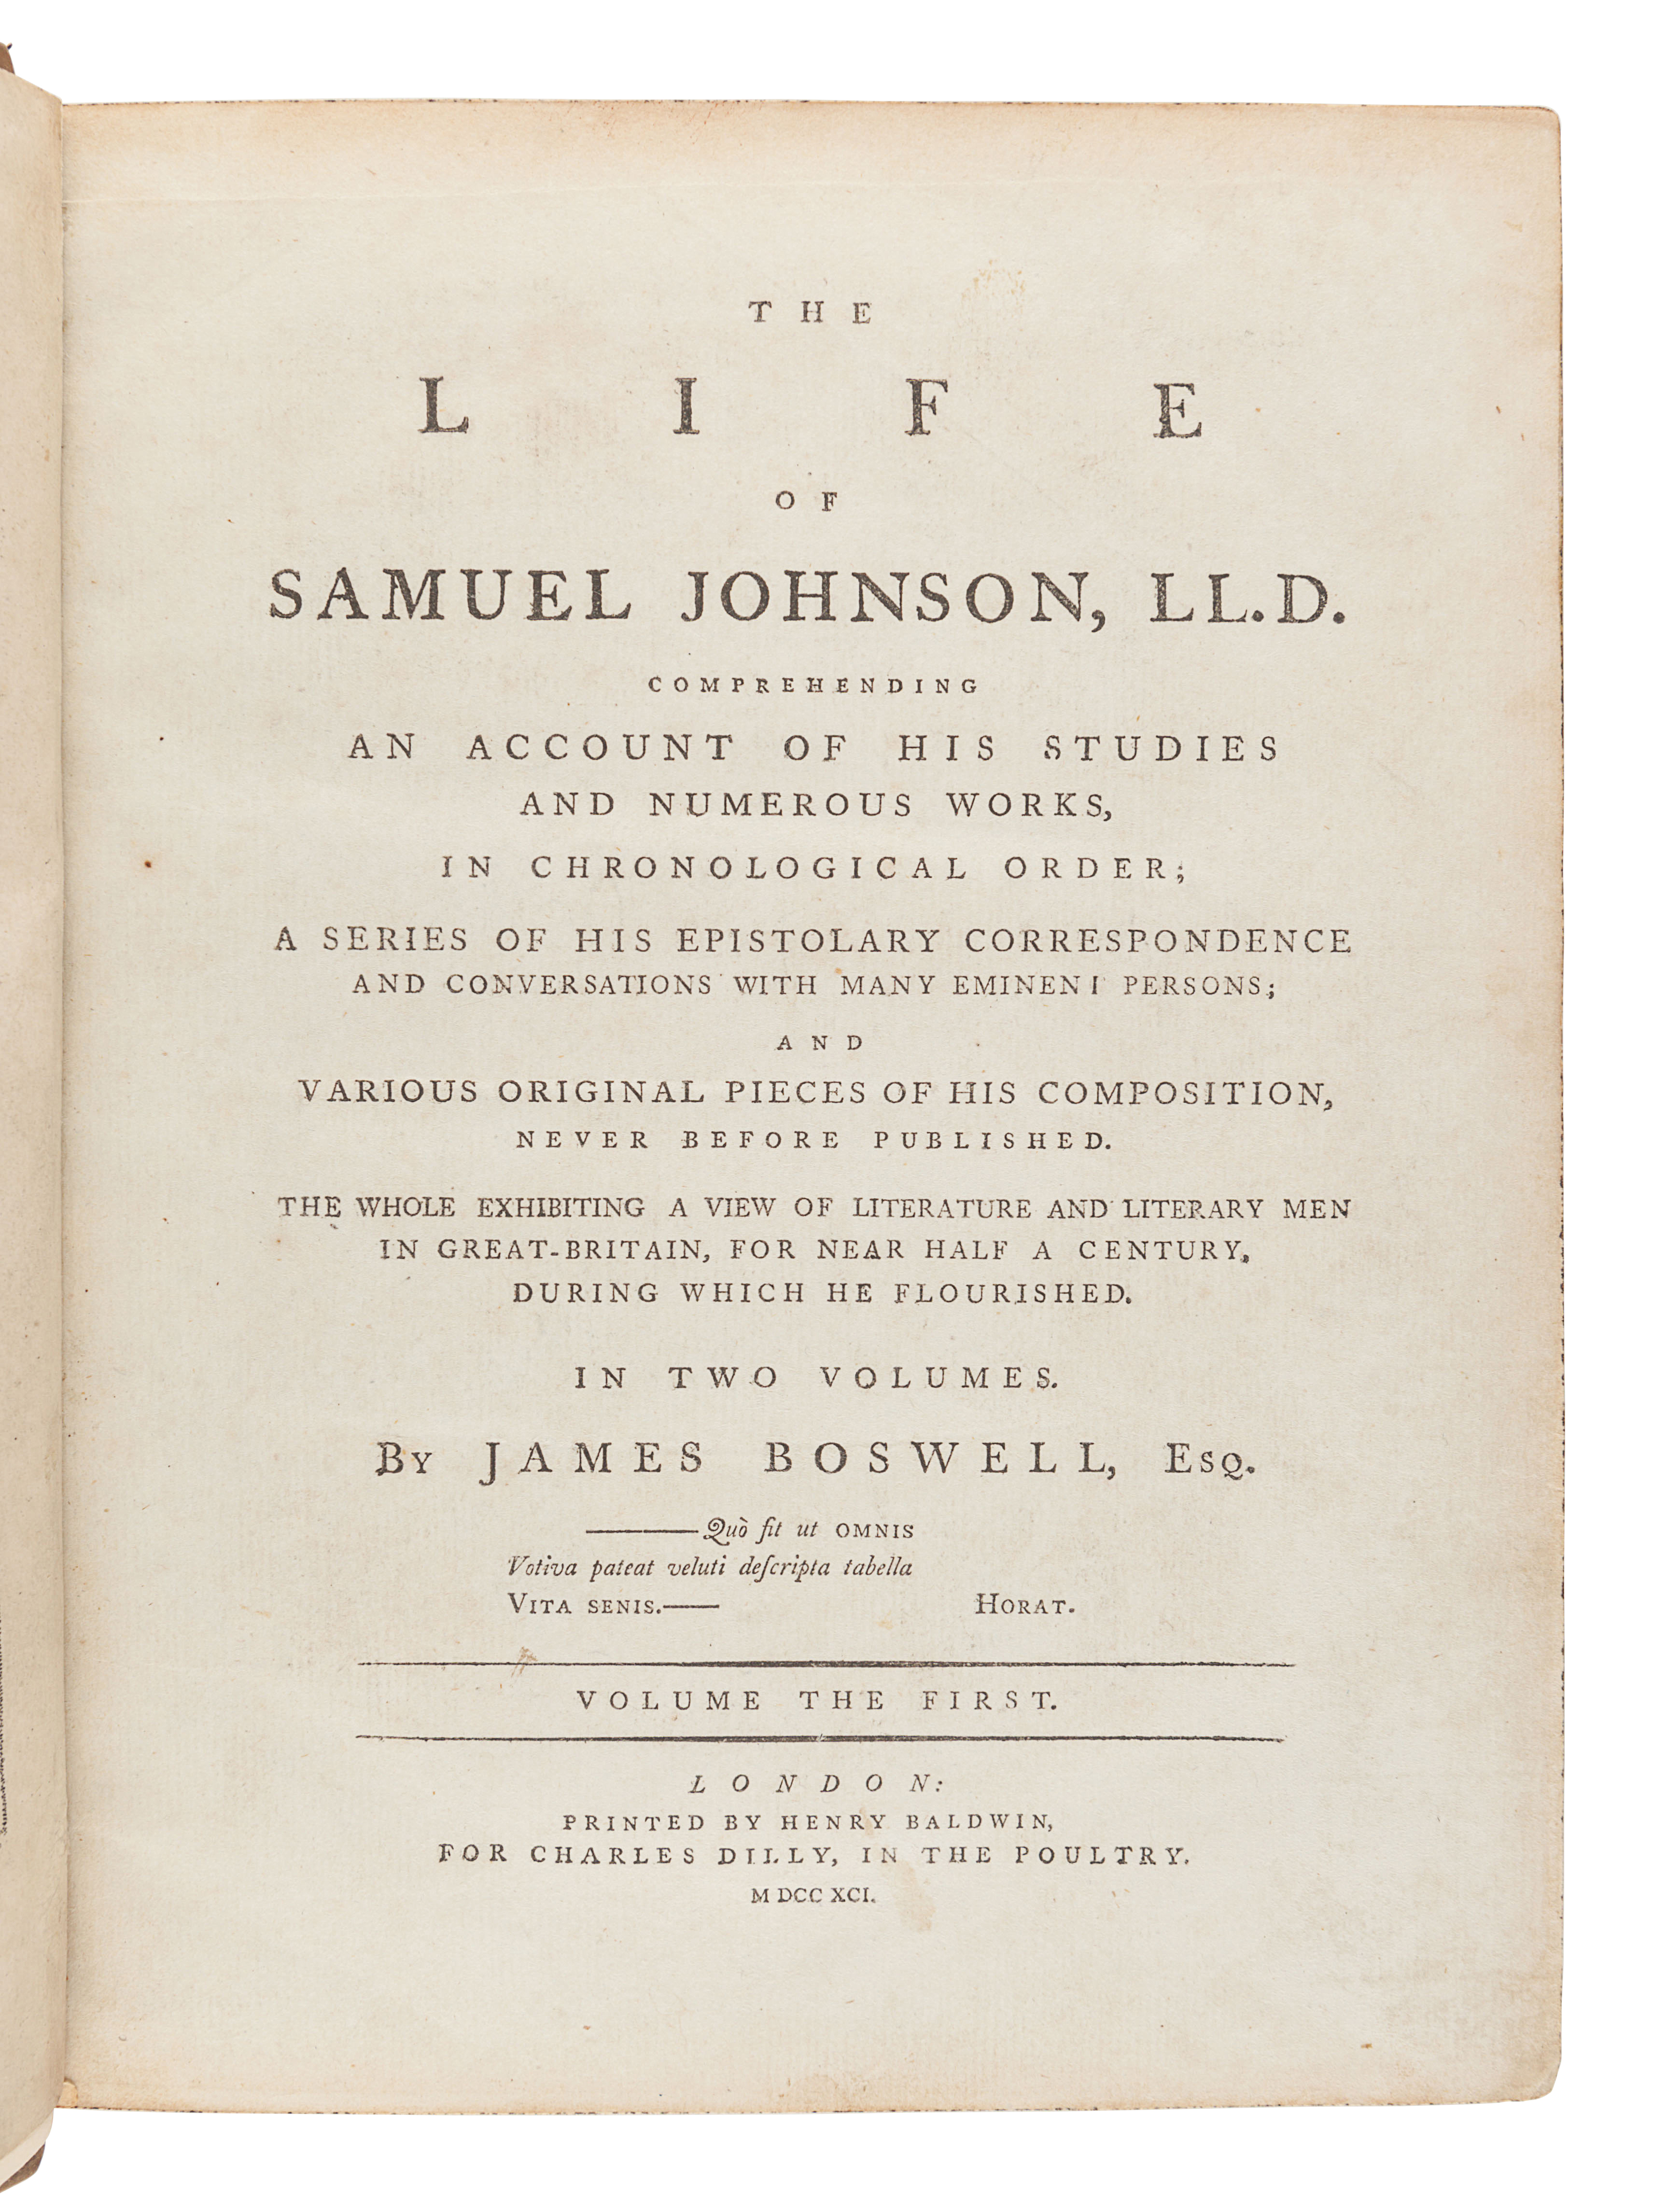 BOSWELL, James (1740-1795). The Life of Samuel Johnson. London: Henry Baldwin for Charles Dilly, 179